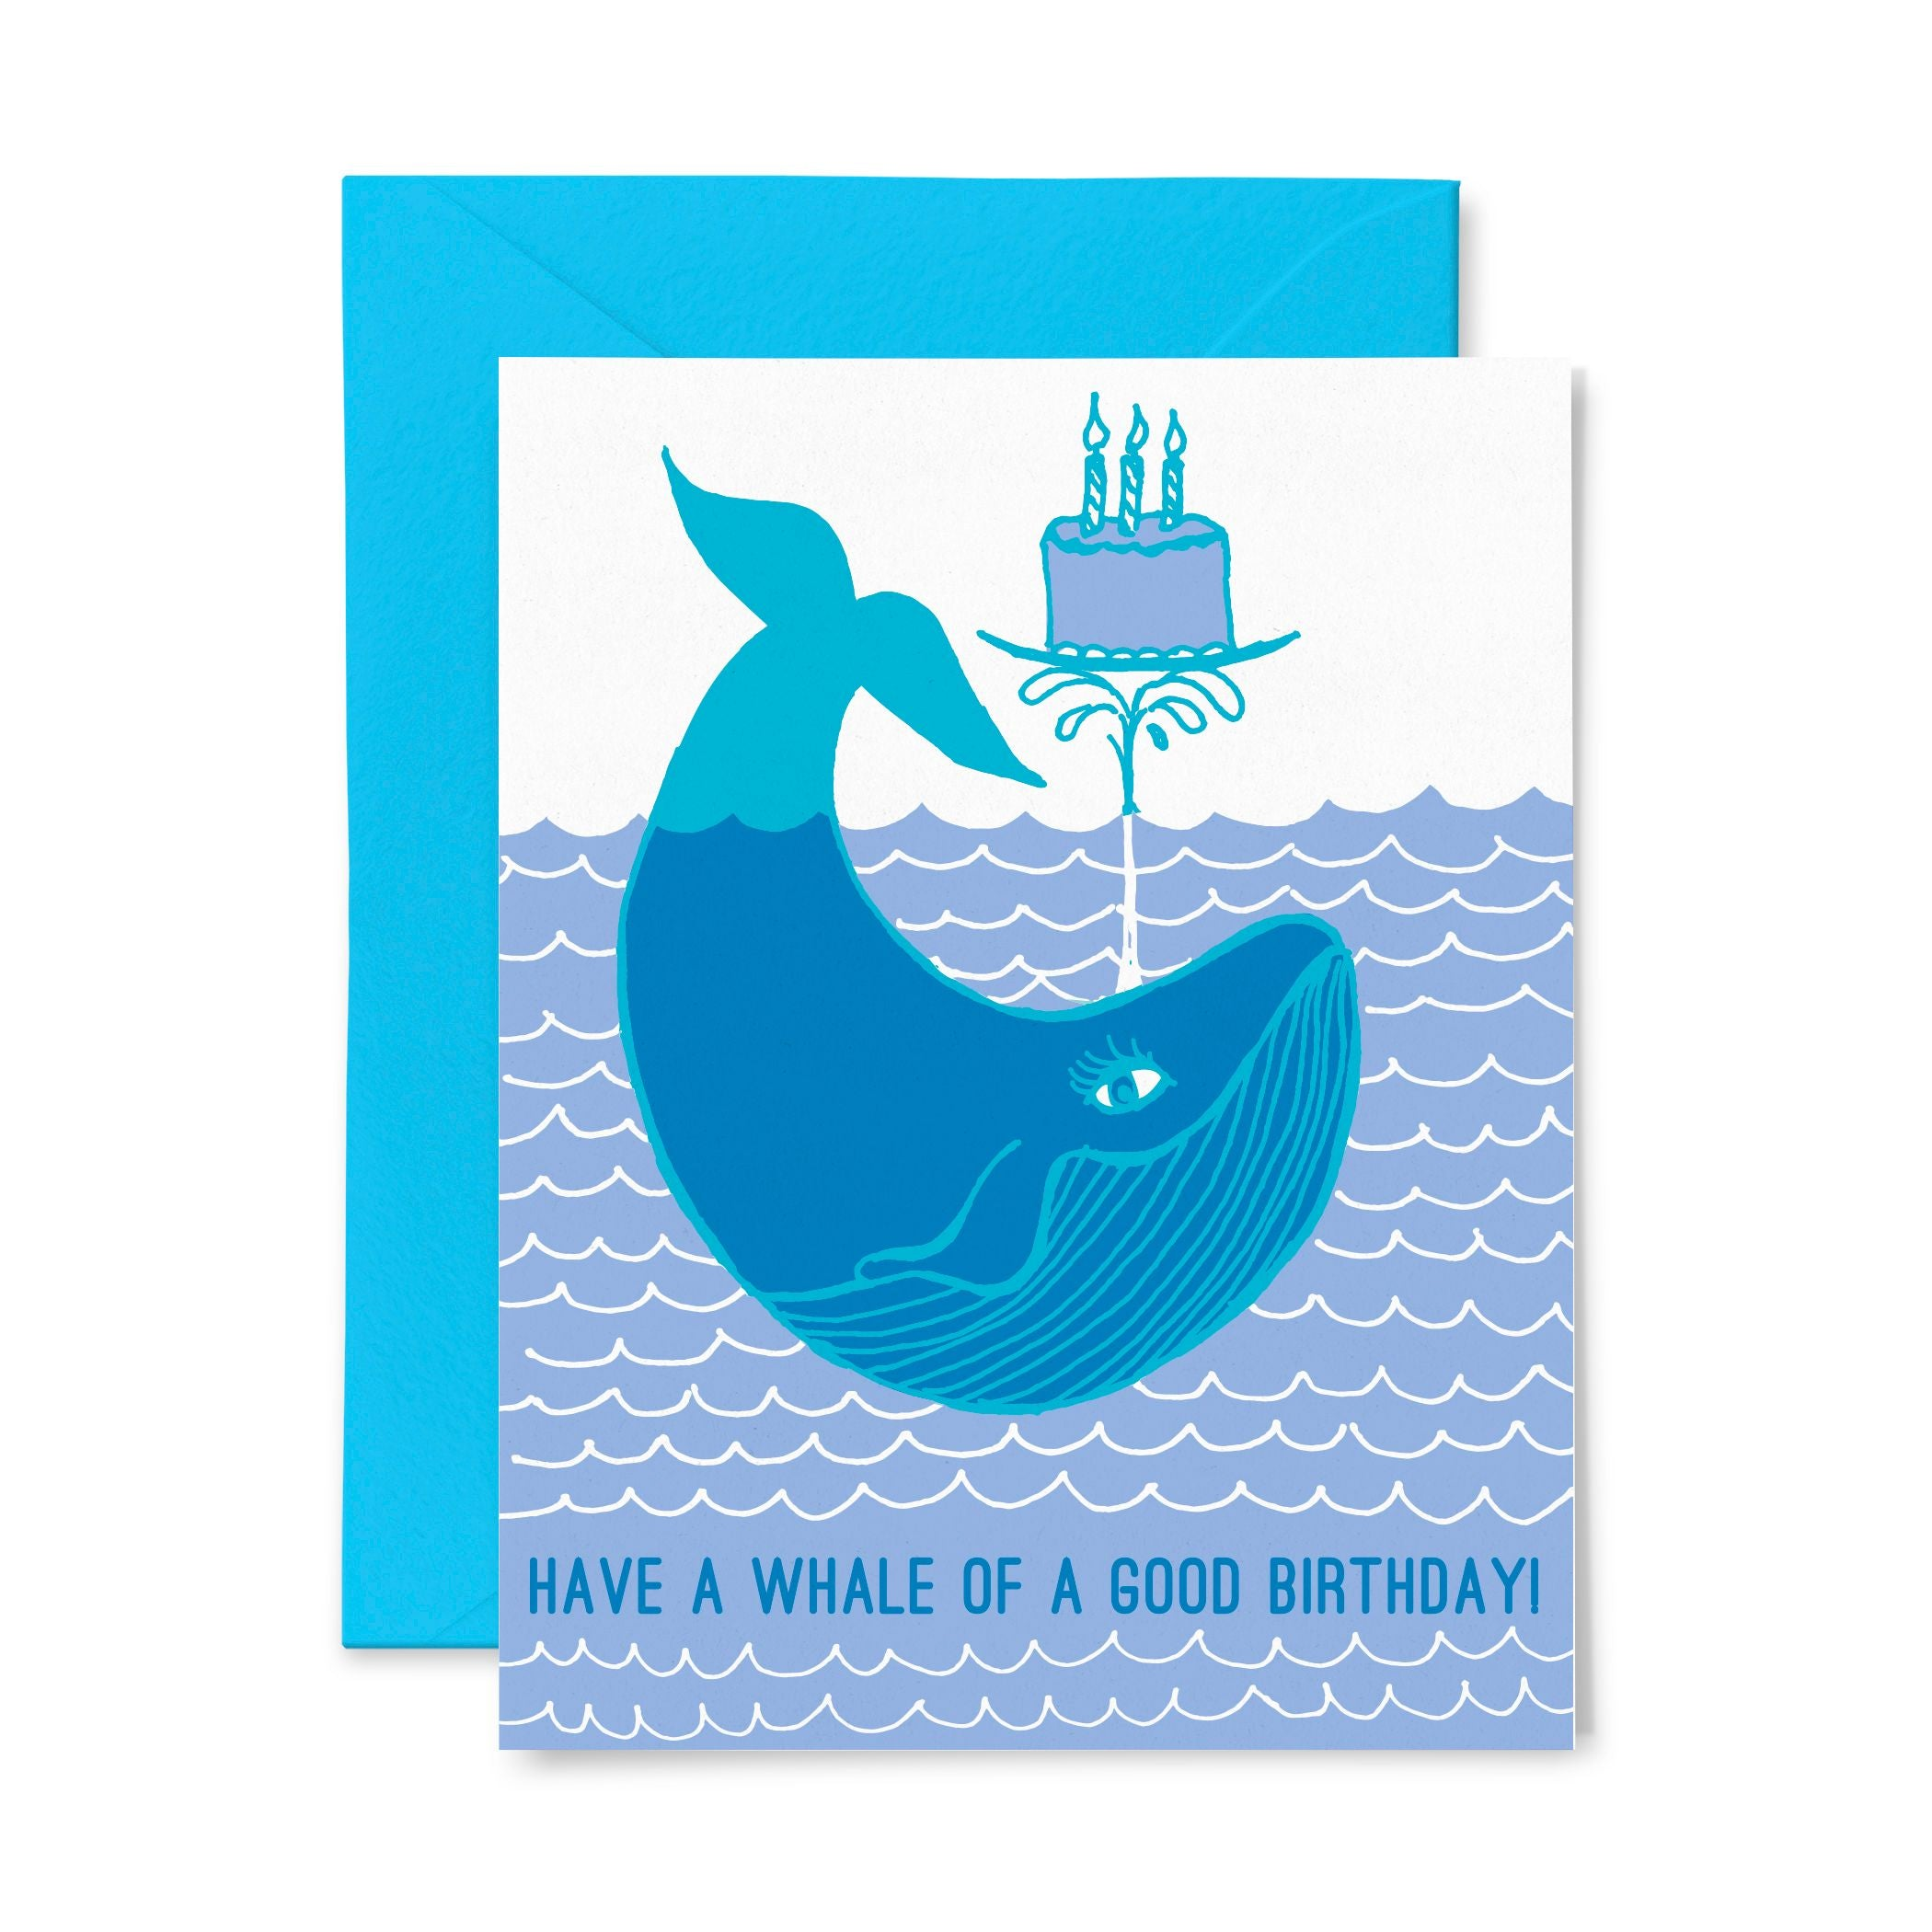 Whale Cake | Birthday | Letterpress Greeting Card